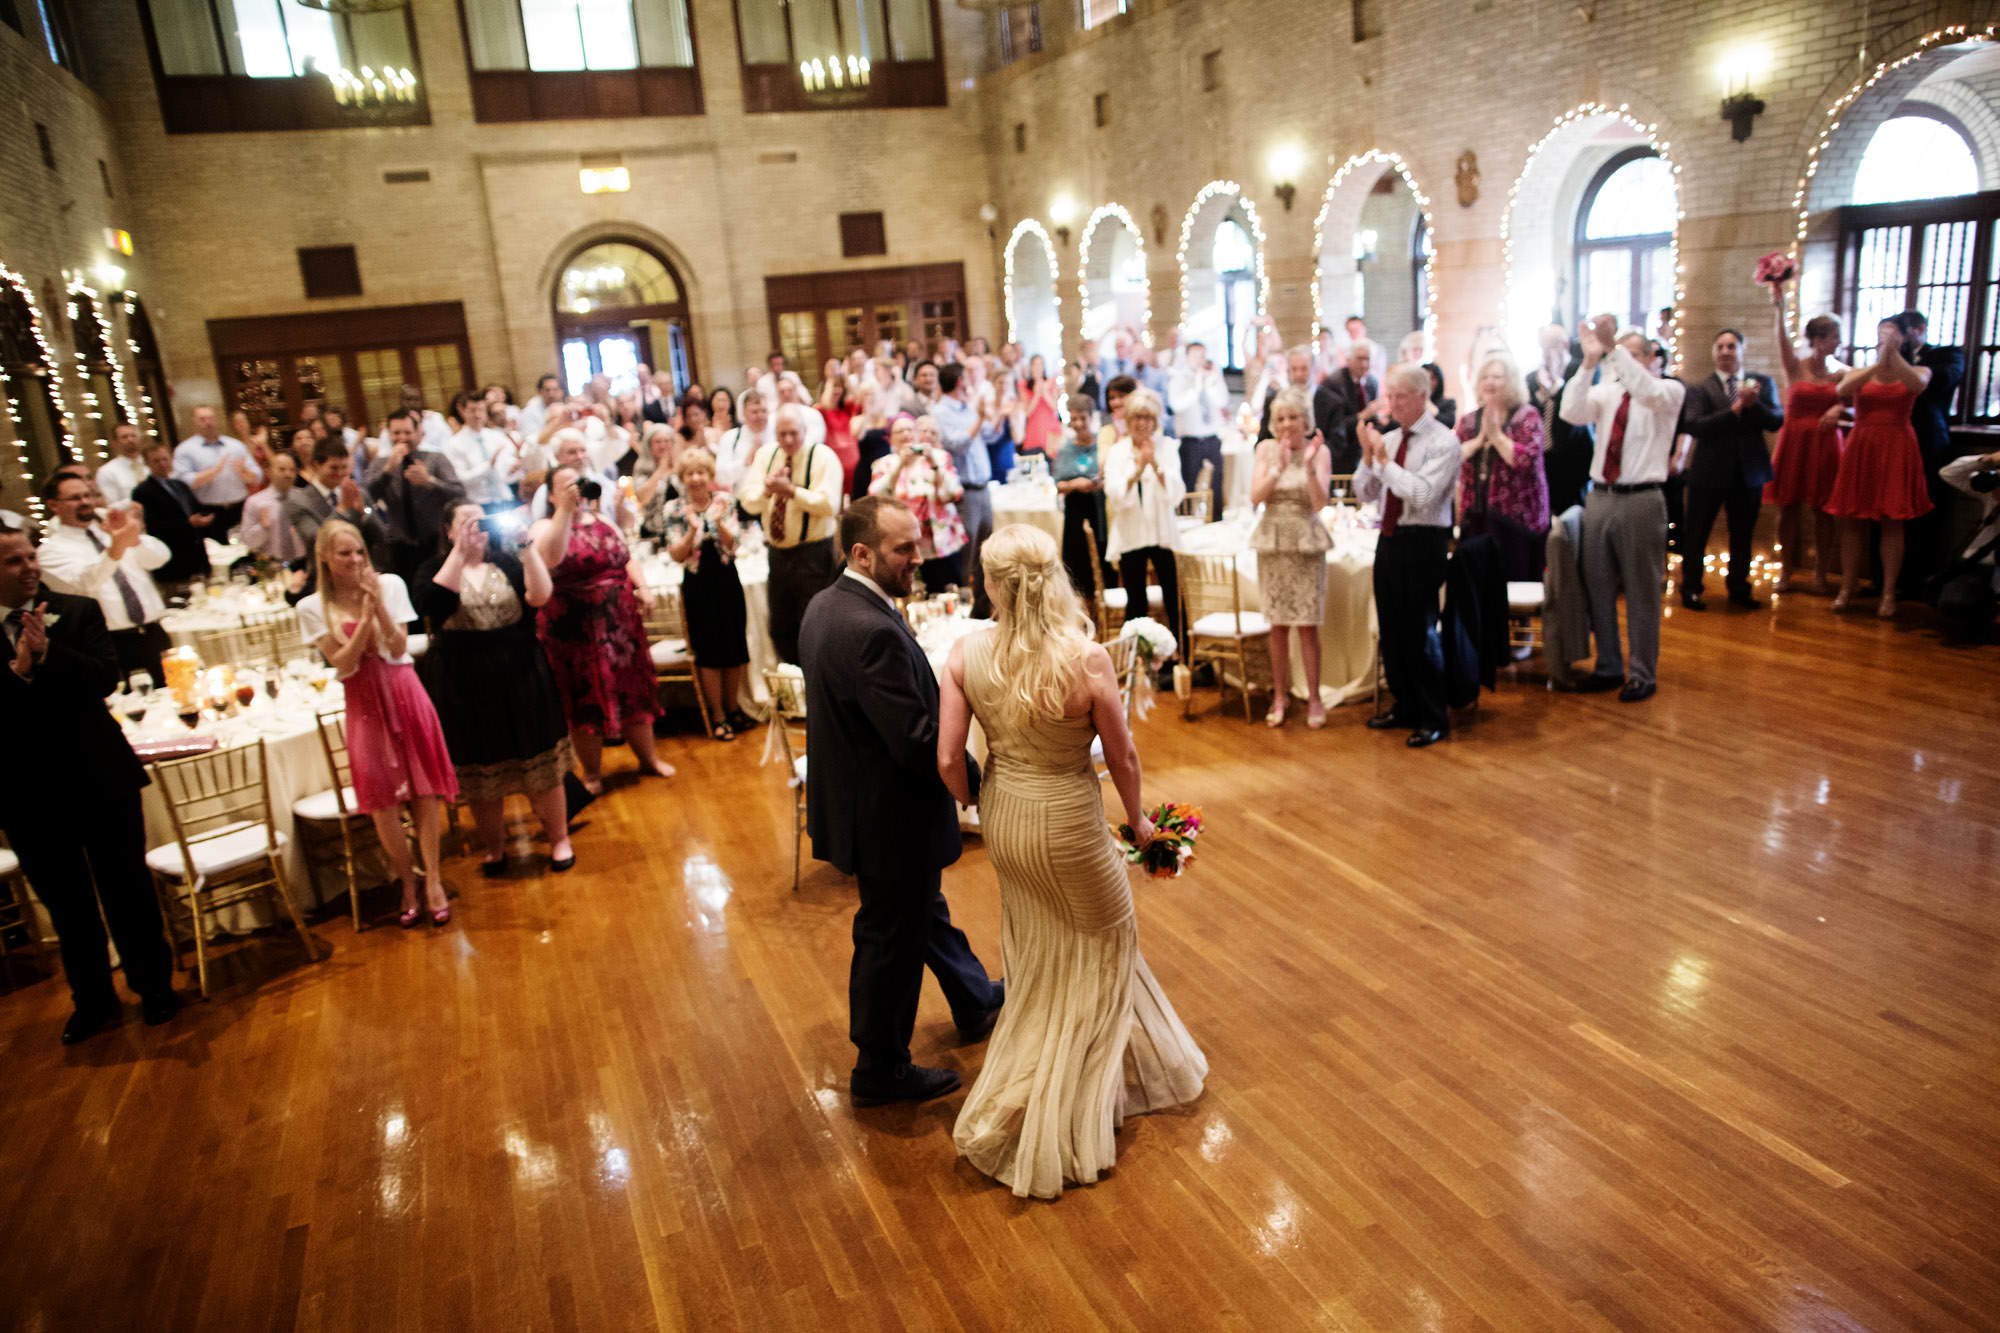 The bride and groom are introduced to their wedding reception at St Francis Hall.